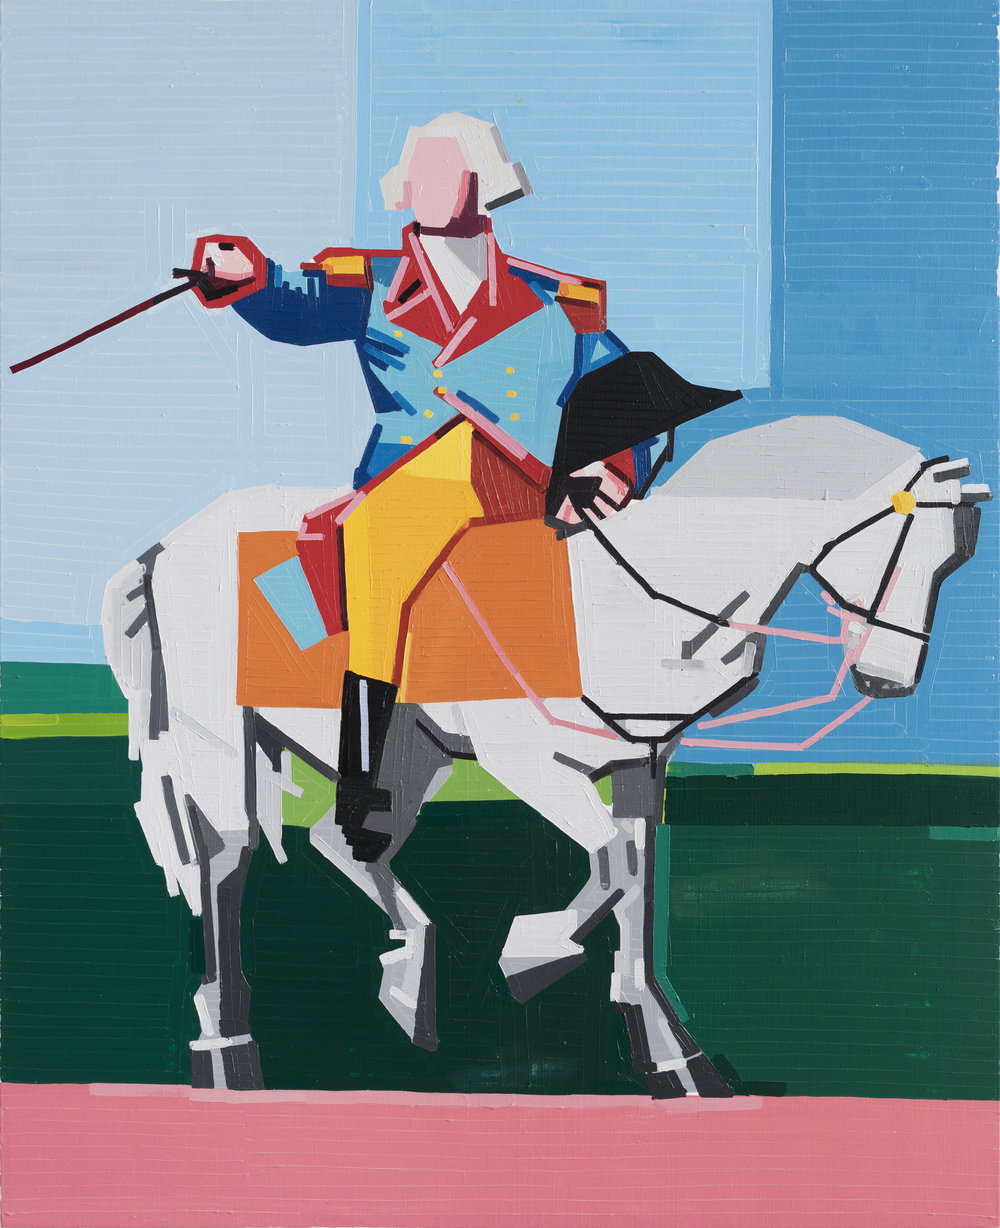 George Washington (Barbarian In The Garden), 2017 oil on linen 148 x 120 cm - 58 9/32 x 47 1/4 inches